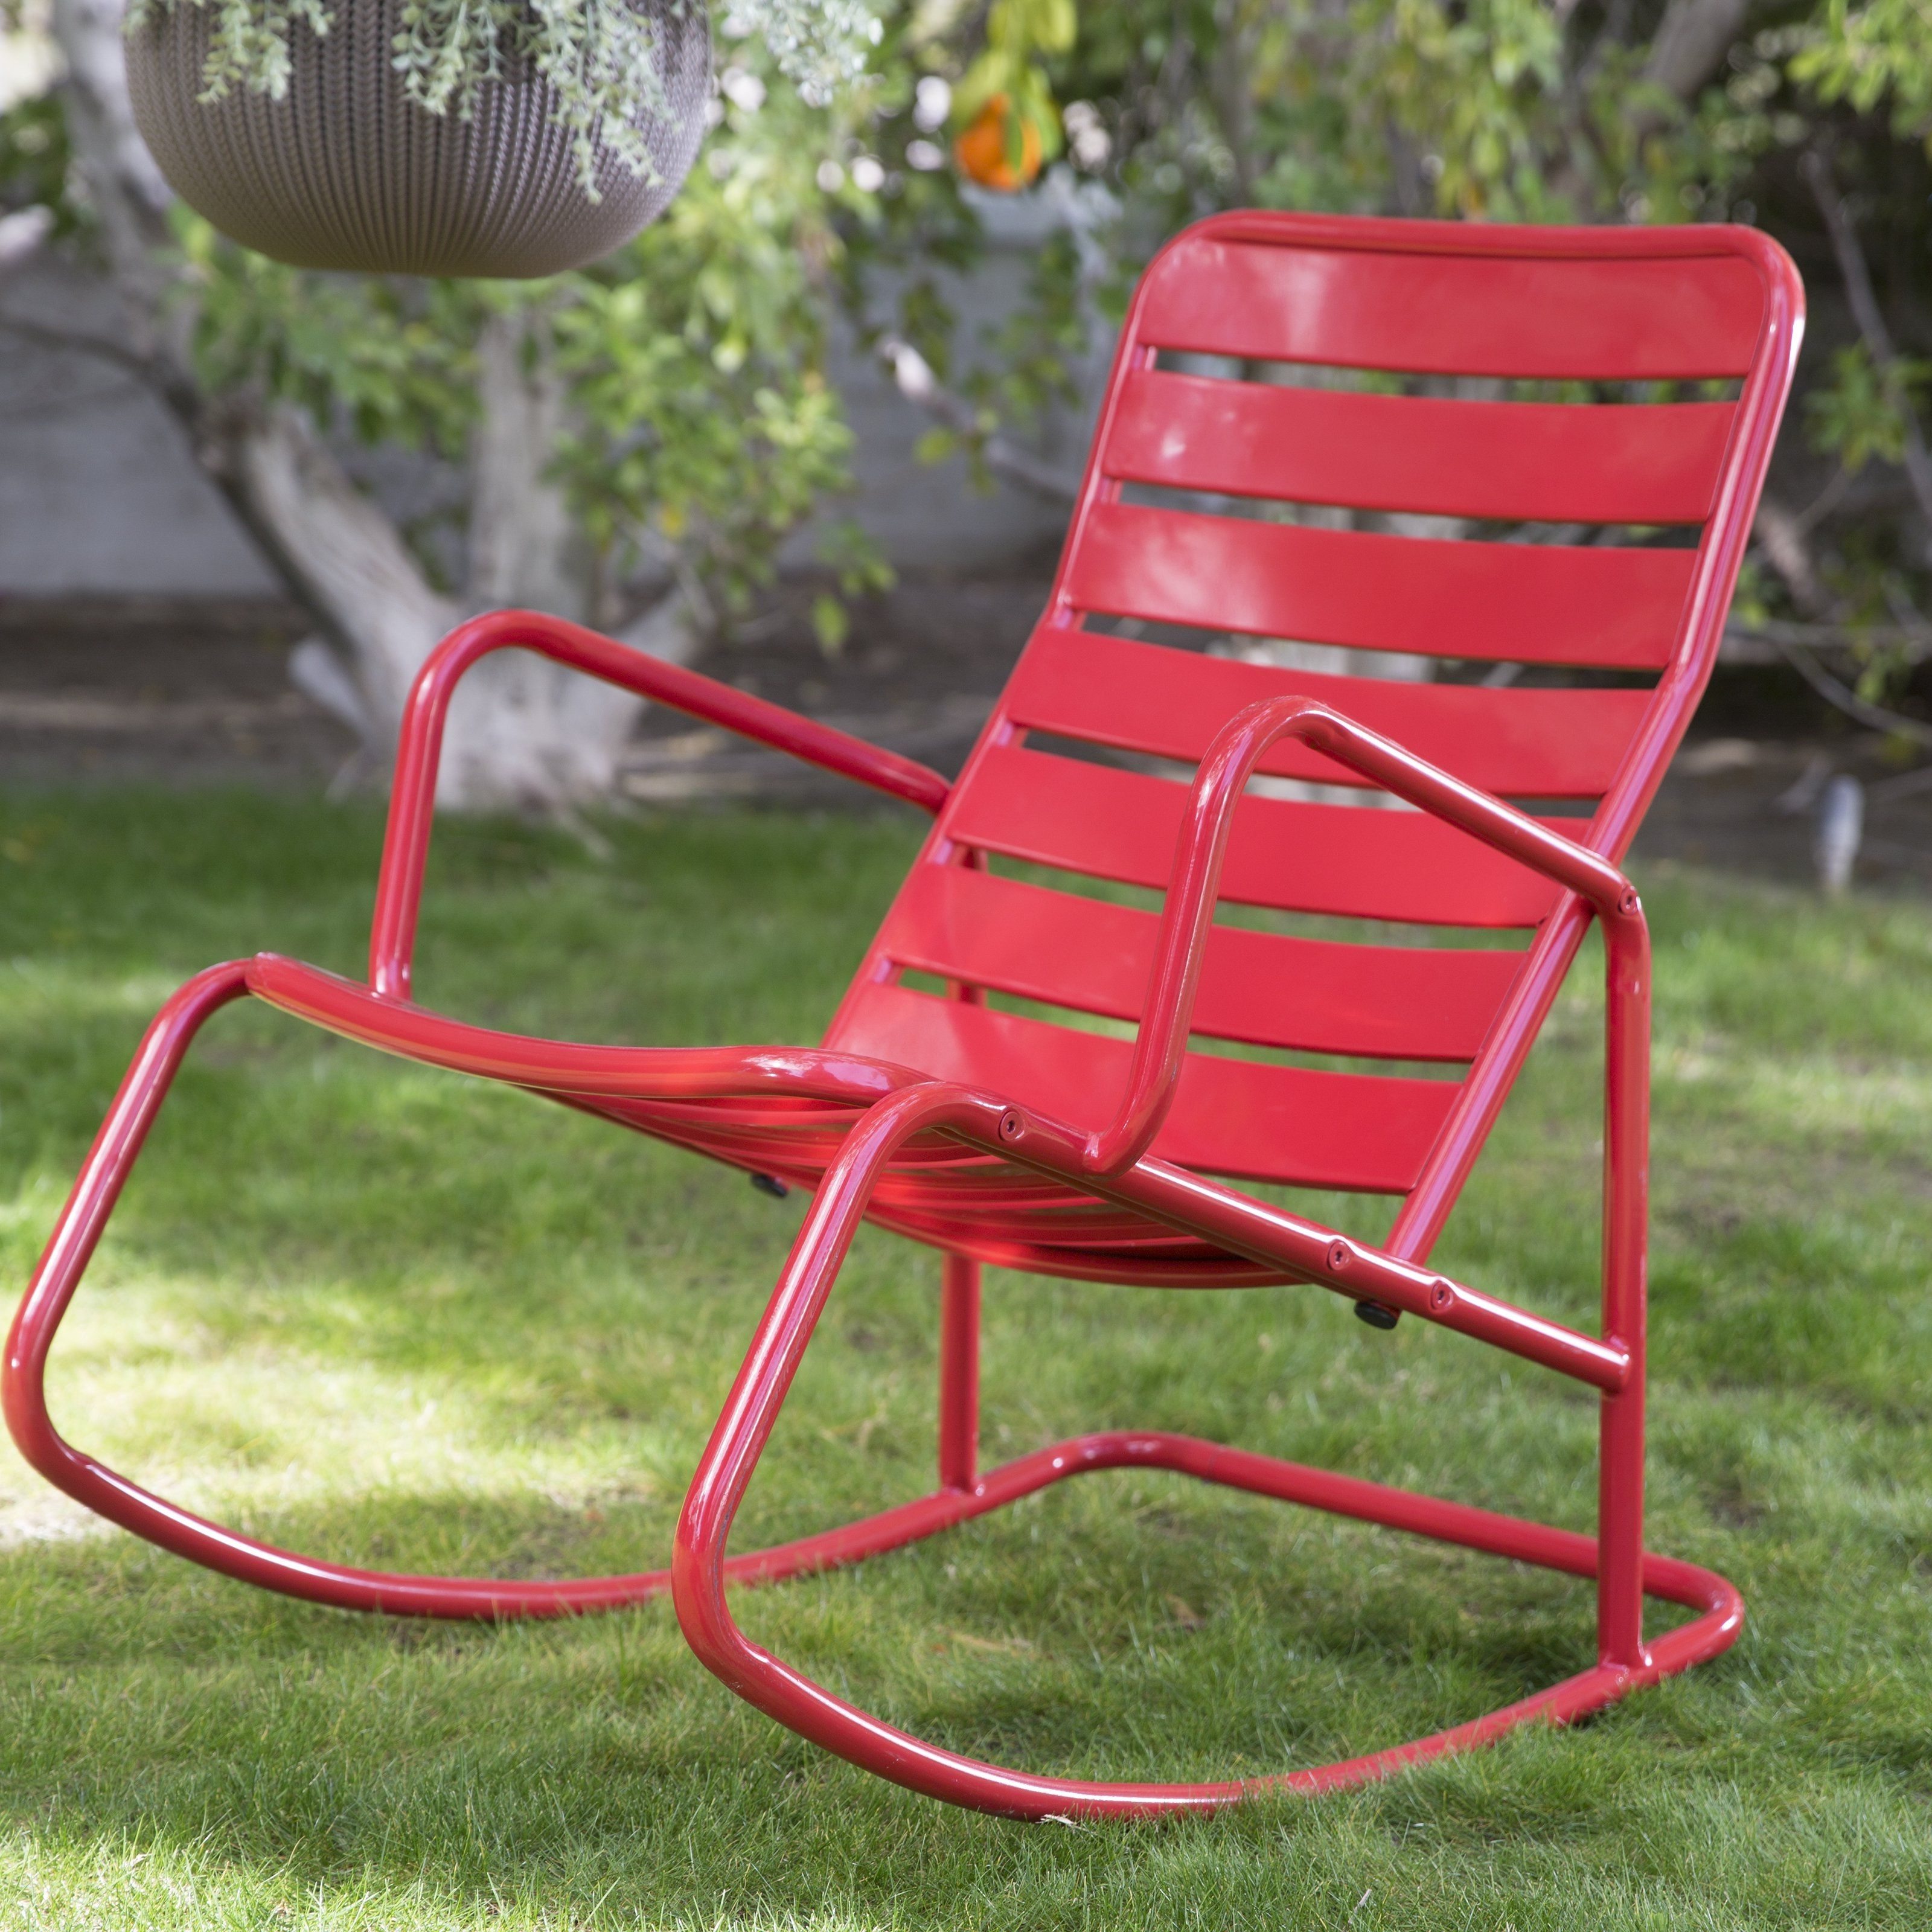 Widely Used Belham Living Adley Outdoor Metal Slat Rocking Chair – Contemporary Regarding Red Patio Rocking Chairs (View 10 of 20)